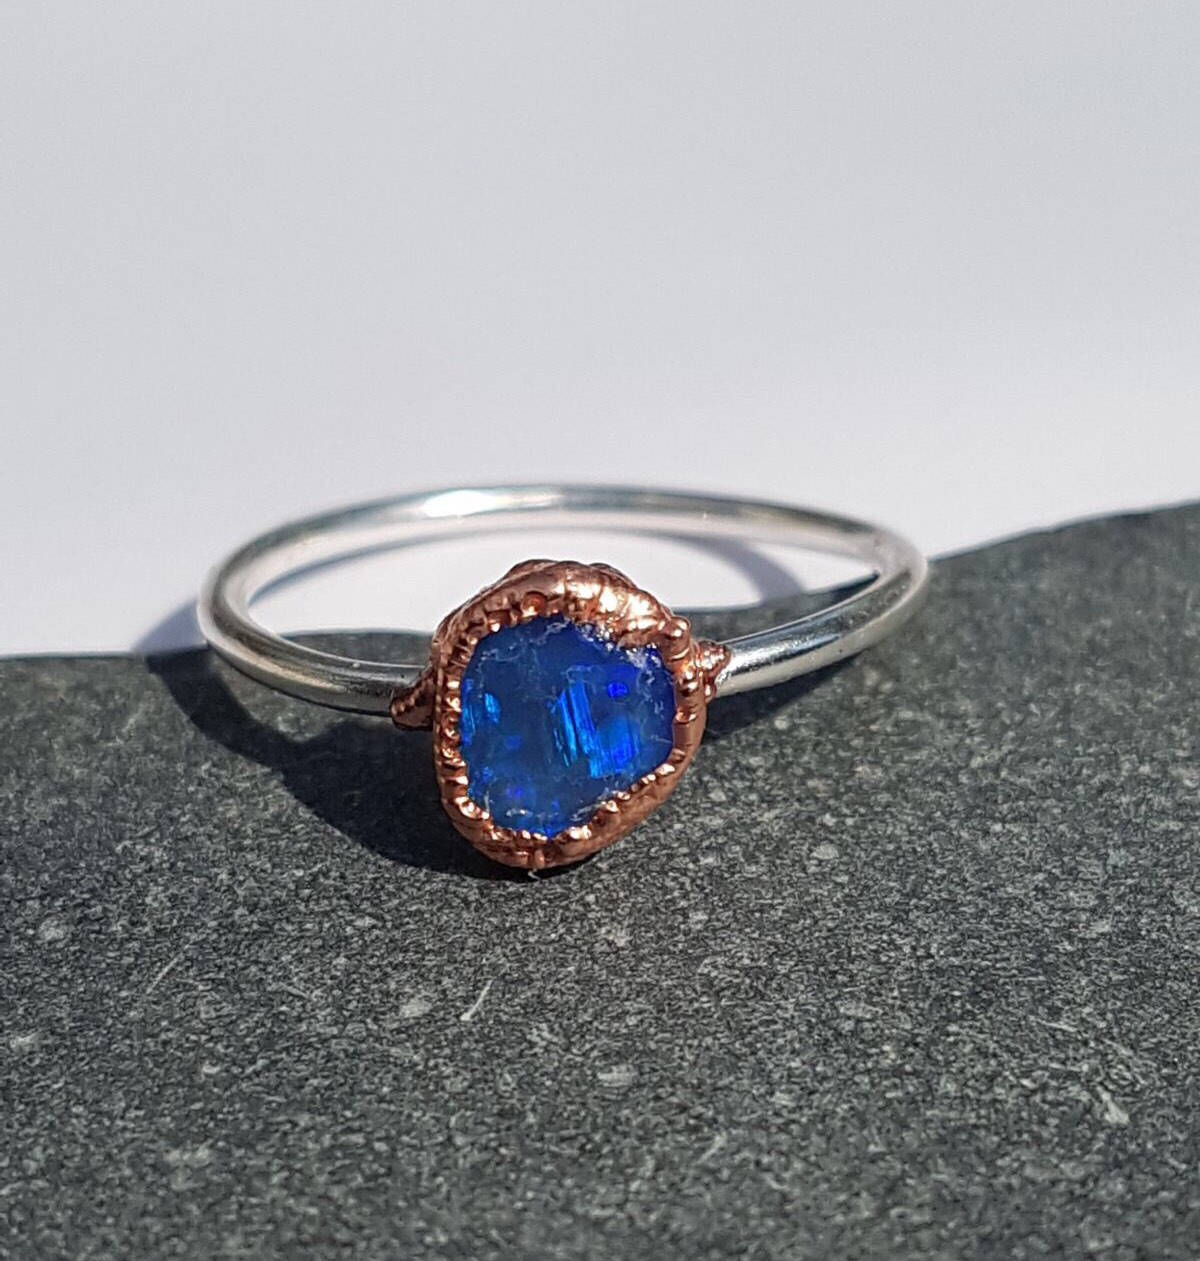 Lightning Ridge Hand Cut Natural Opal, Sterling Silver & Copper, Ring size P, US Ring size 7 1/2. - Glitter and Gem Jewellery